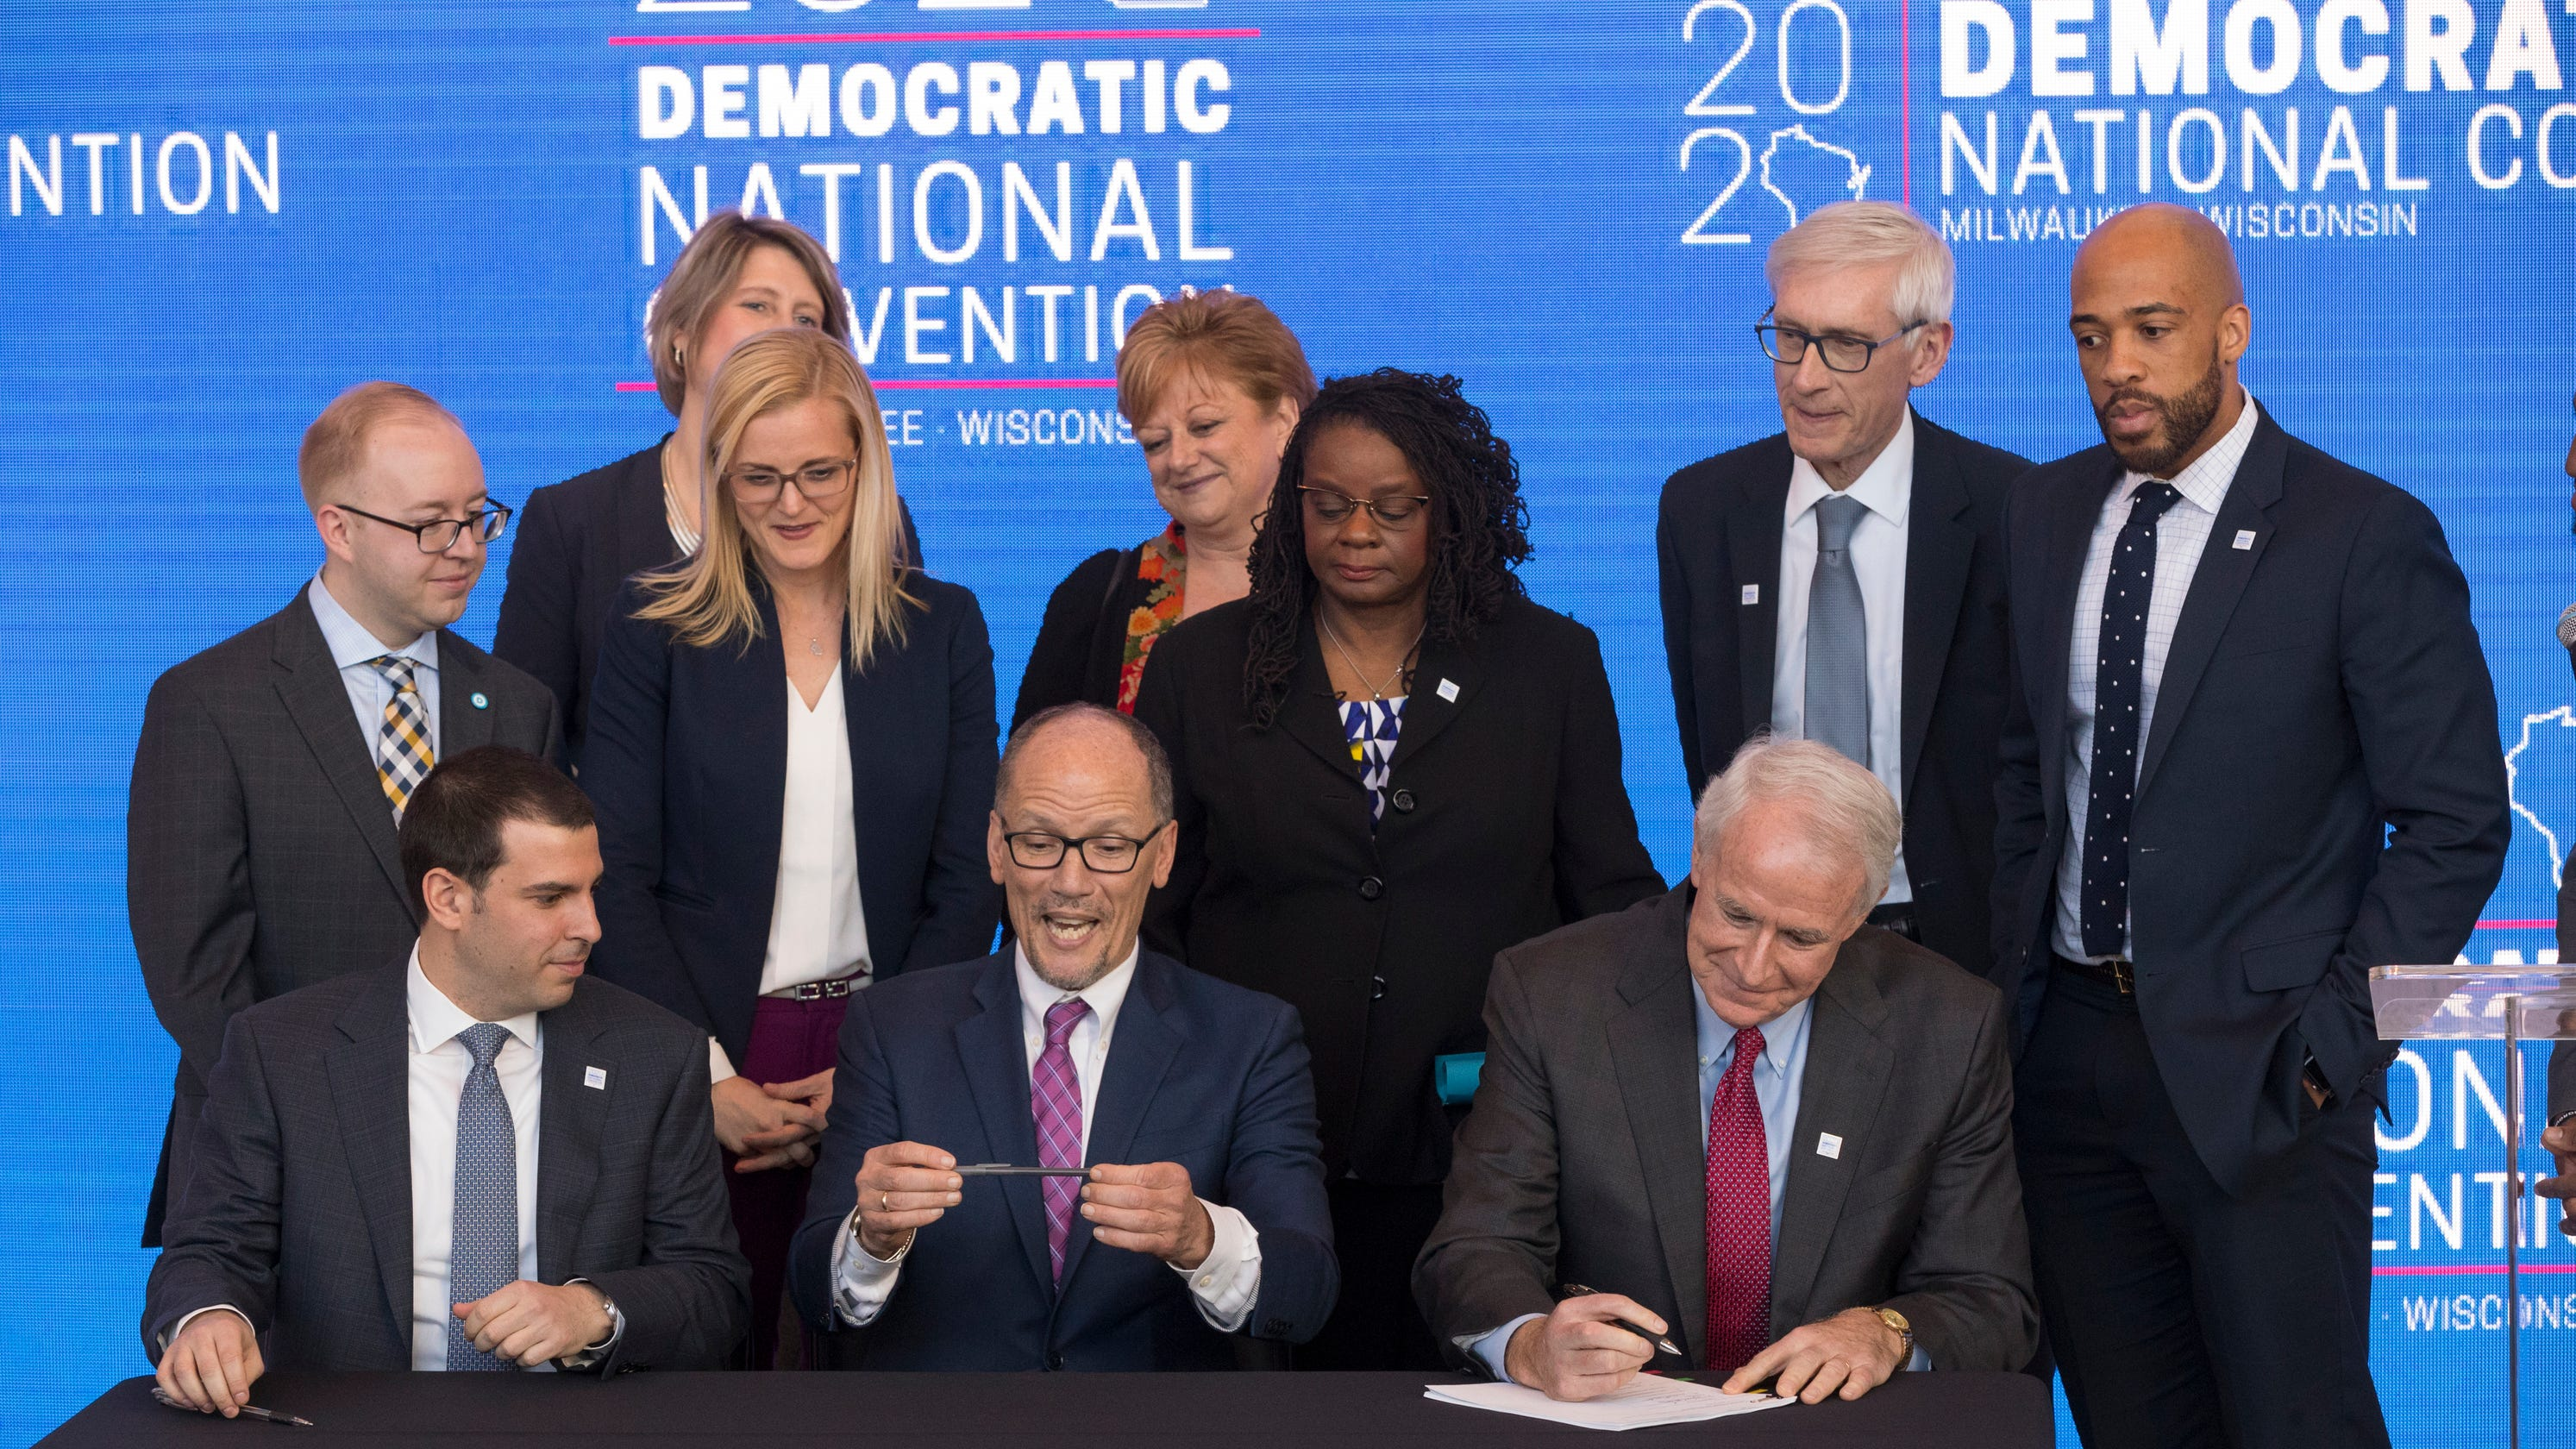 DNC 2020: Top Democratic Party Officials Will Be In